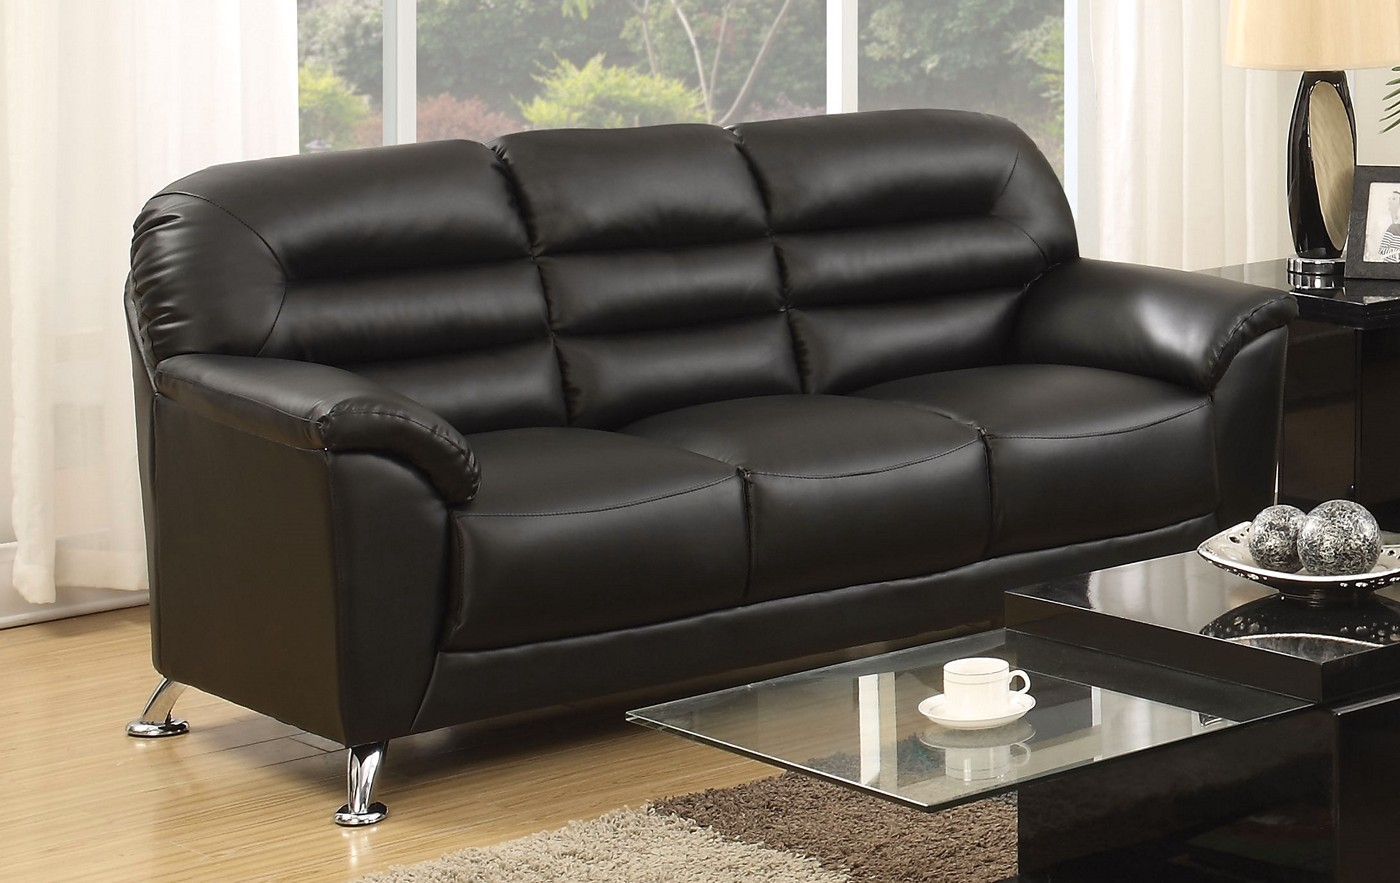 Asmund Modern Black Faux Leather Sofa & Loveseat With